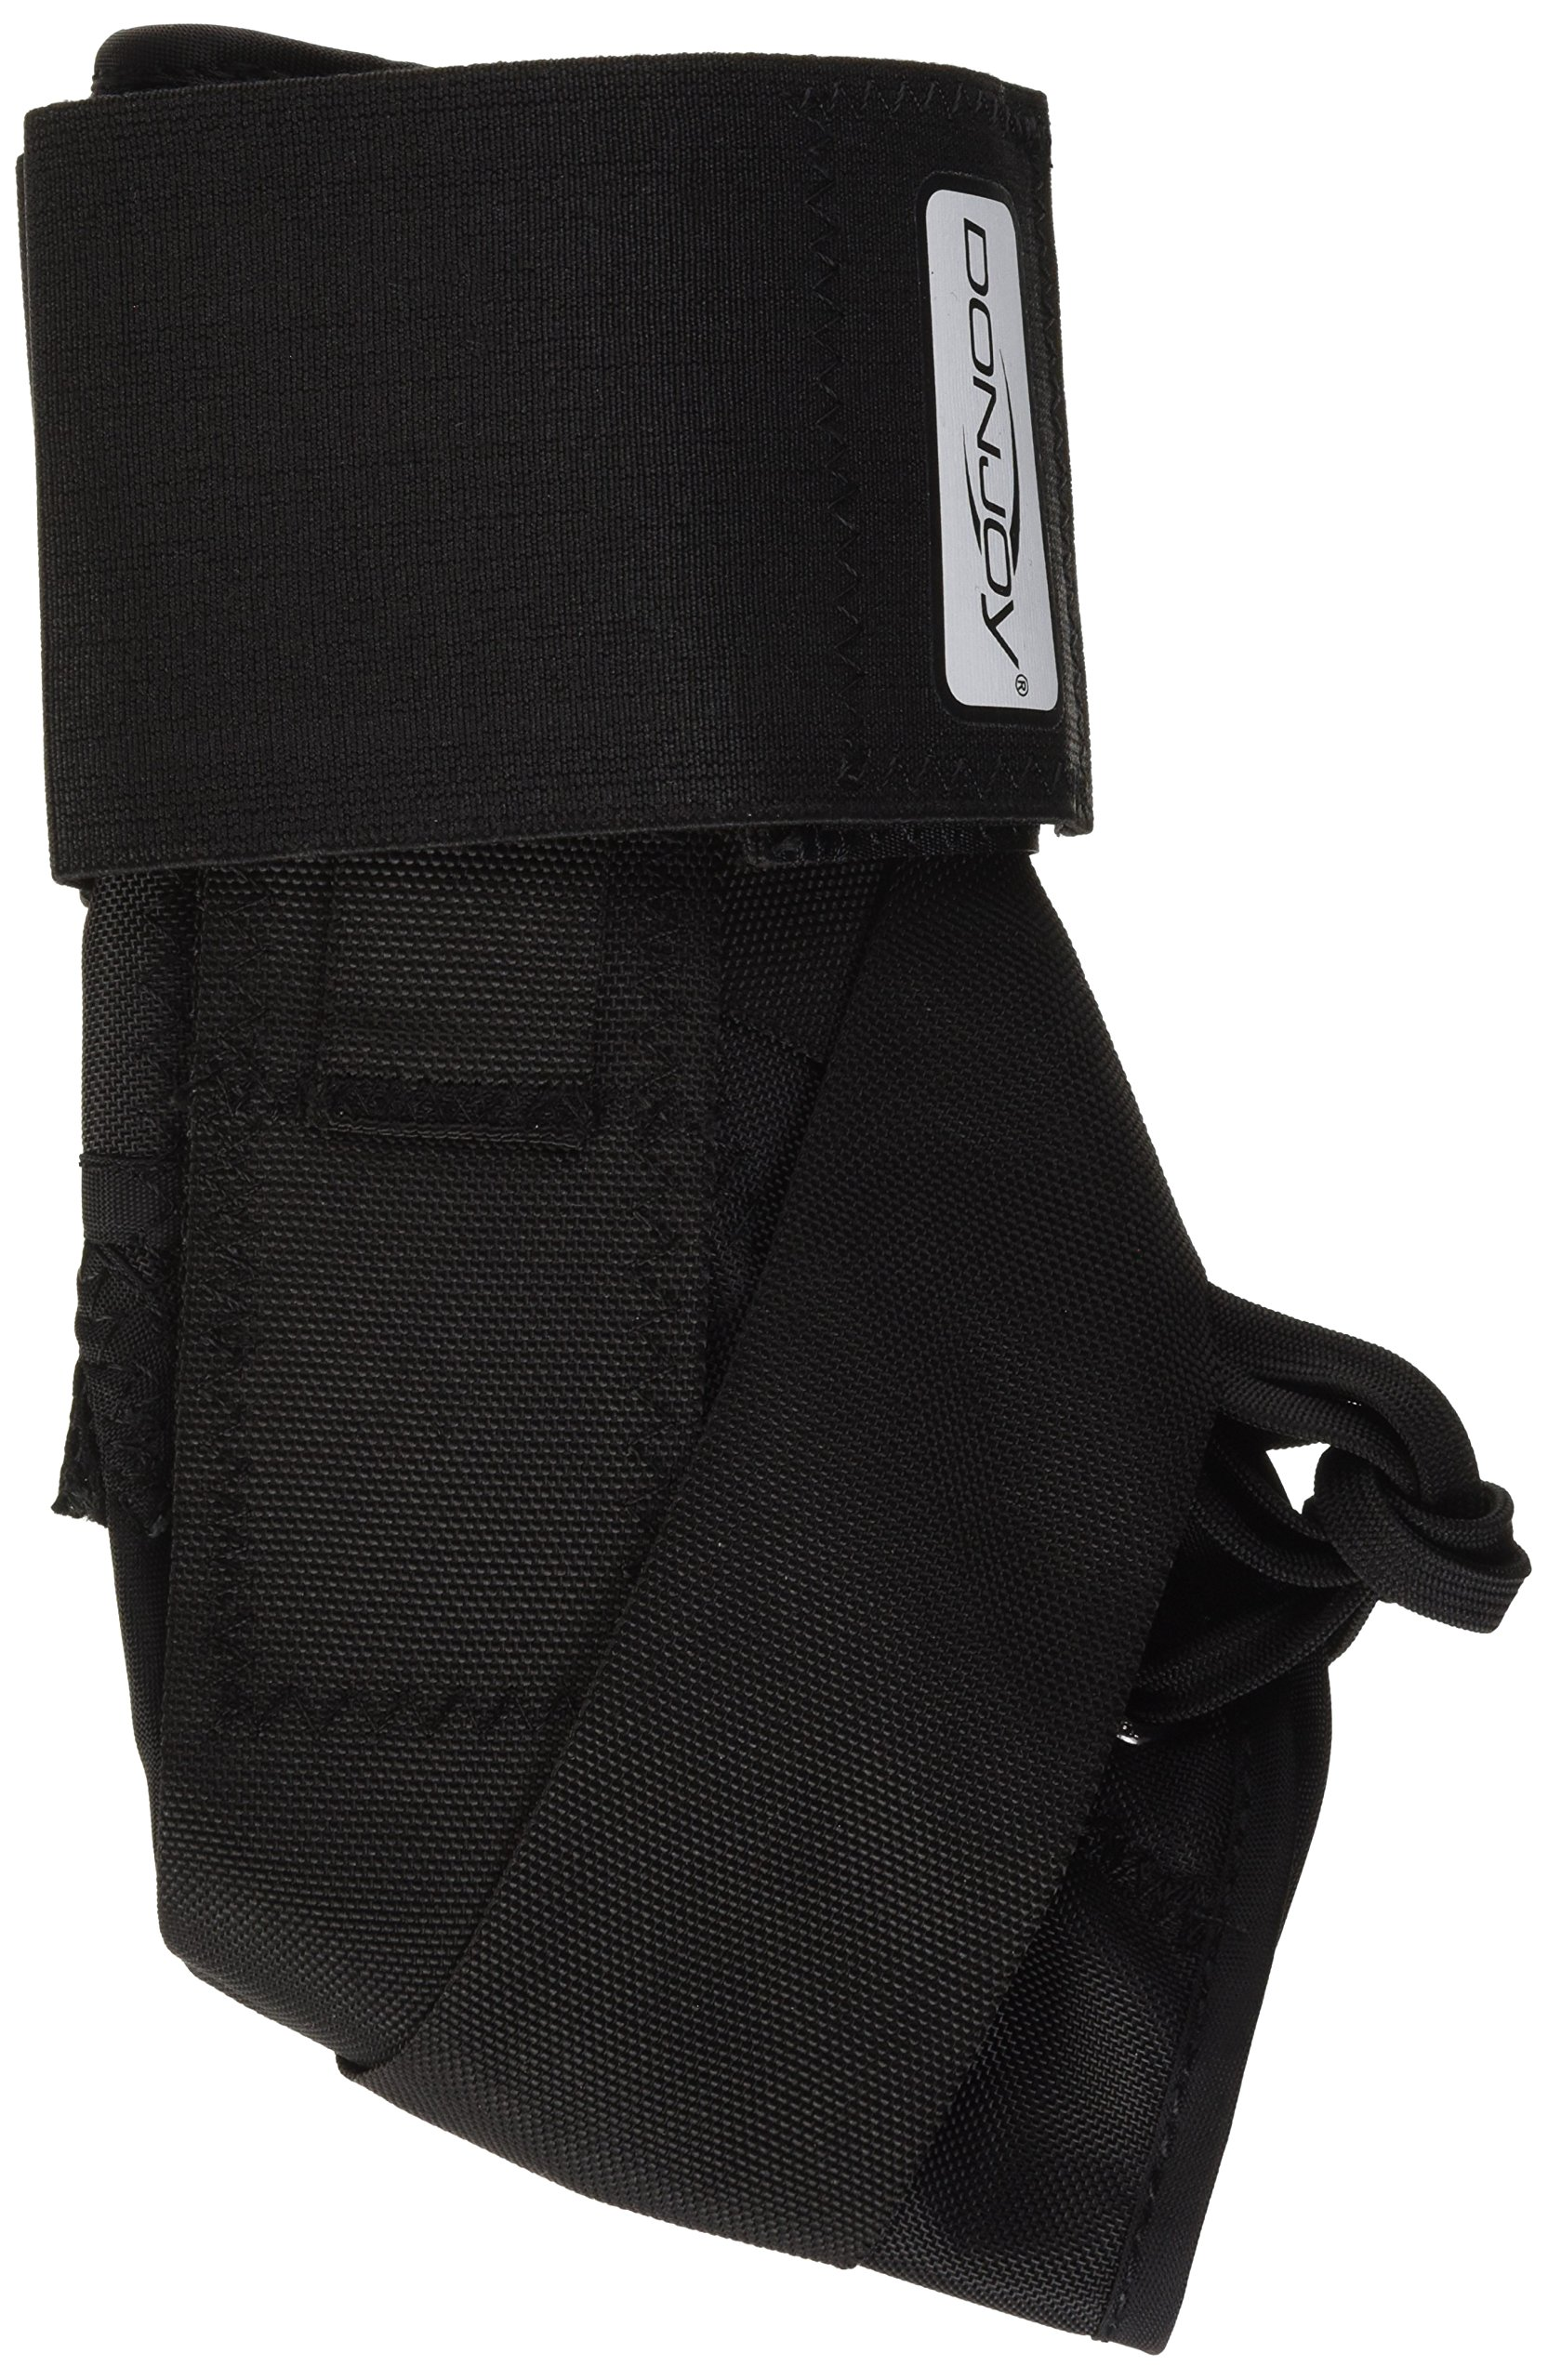 DonJoy Stabilizing Pro Ankle Support Brace, Black, Small by DonJoy